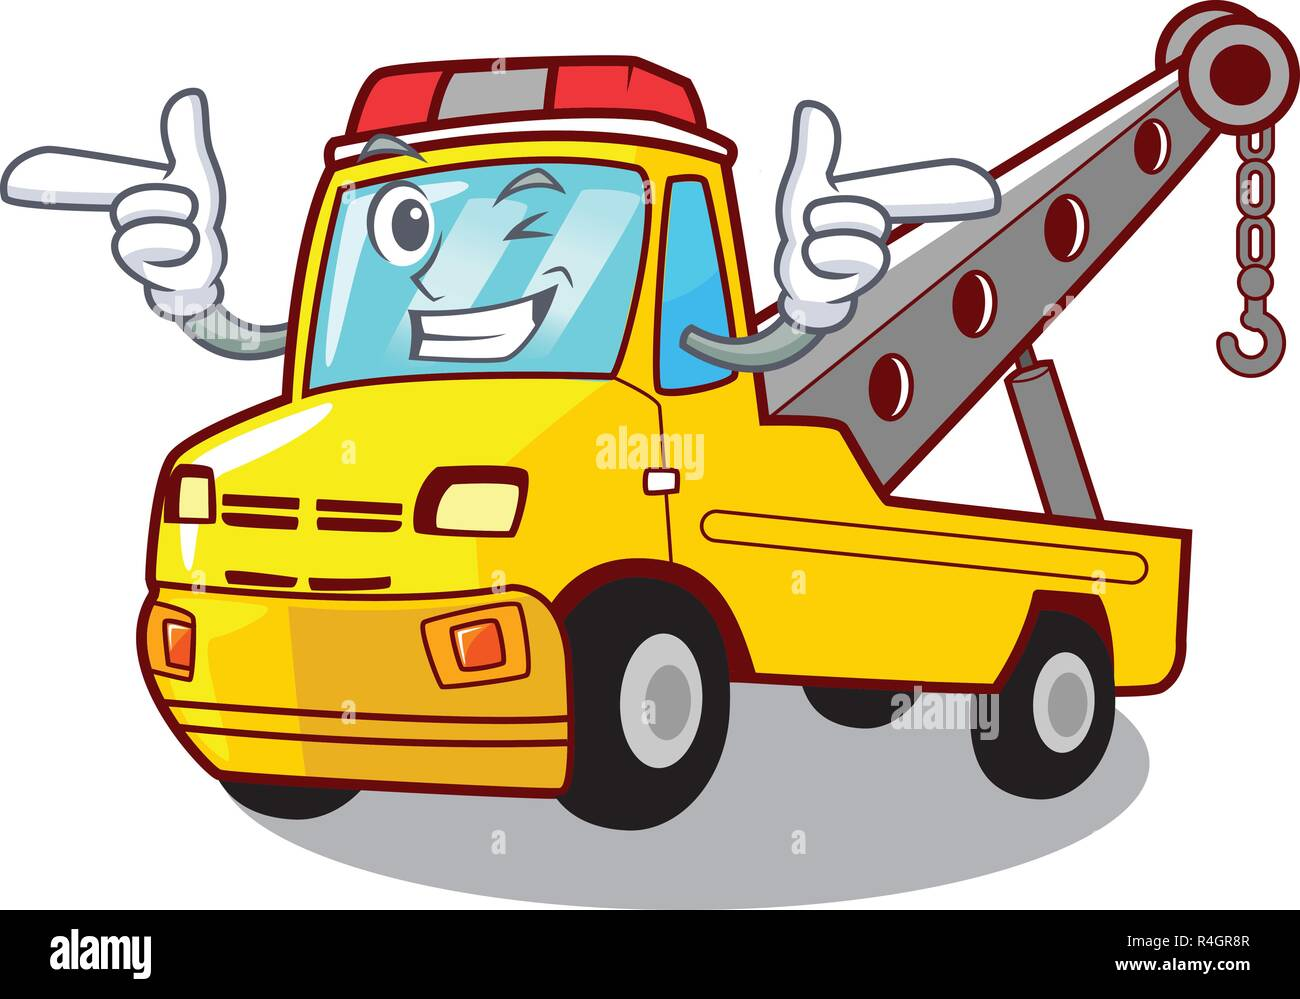 Wink truck tow the vehicle with mascot - Stock Image